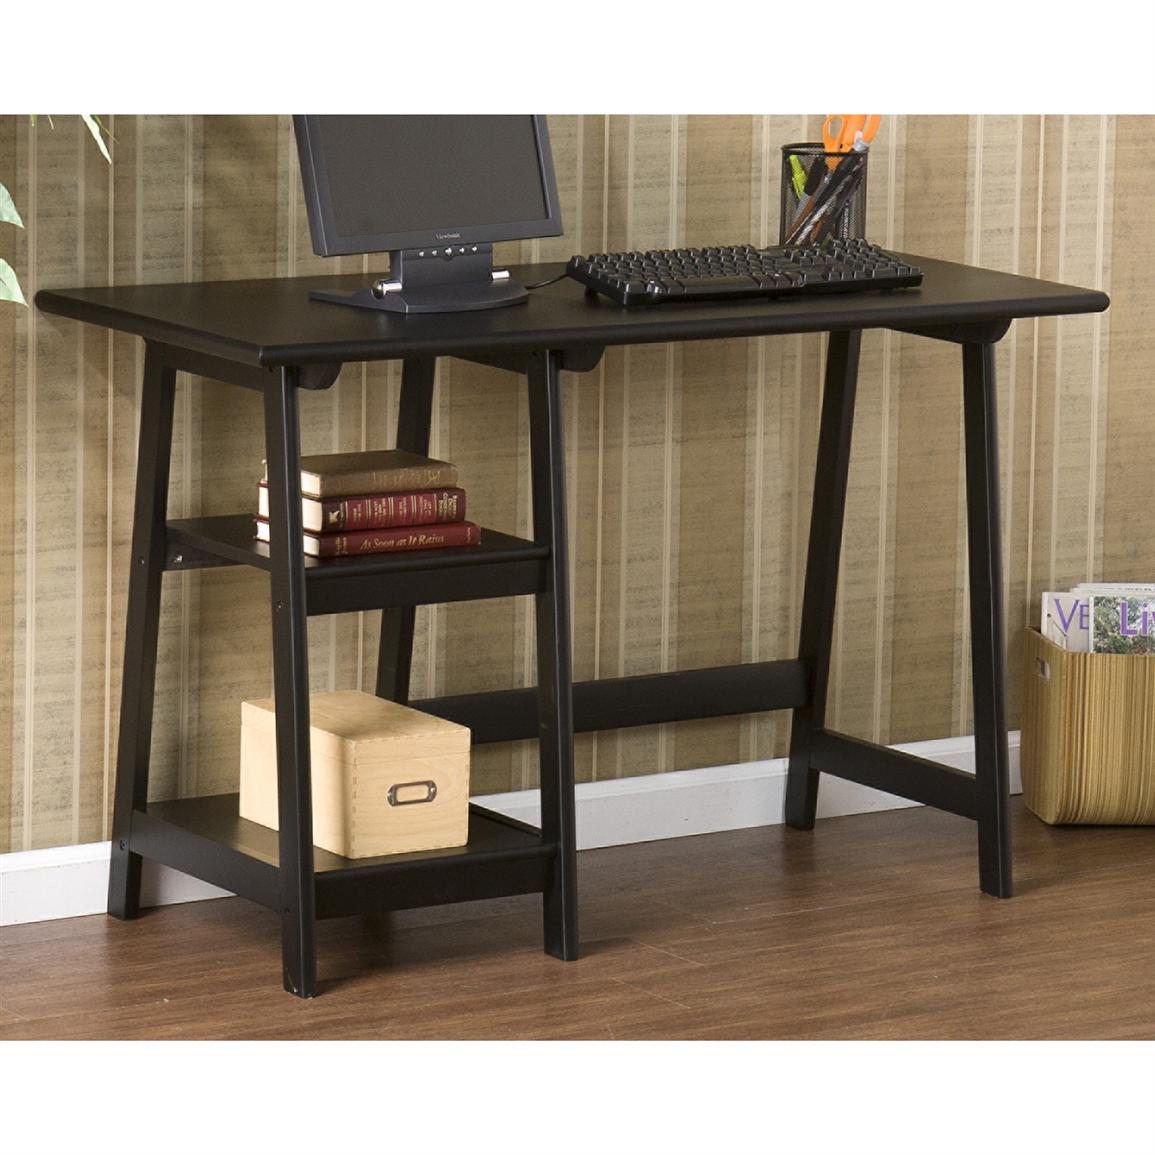 Southern Enterprises, Inc. Langston Desk, Black